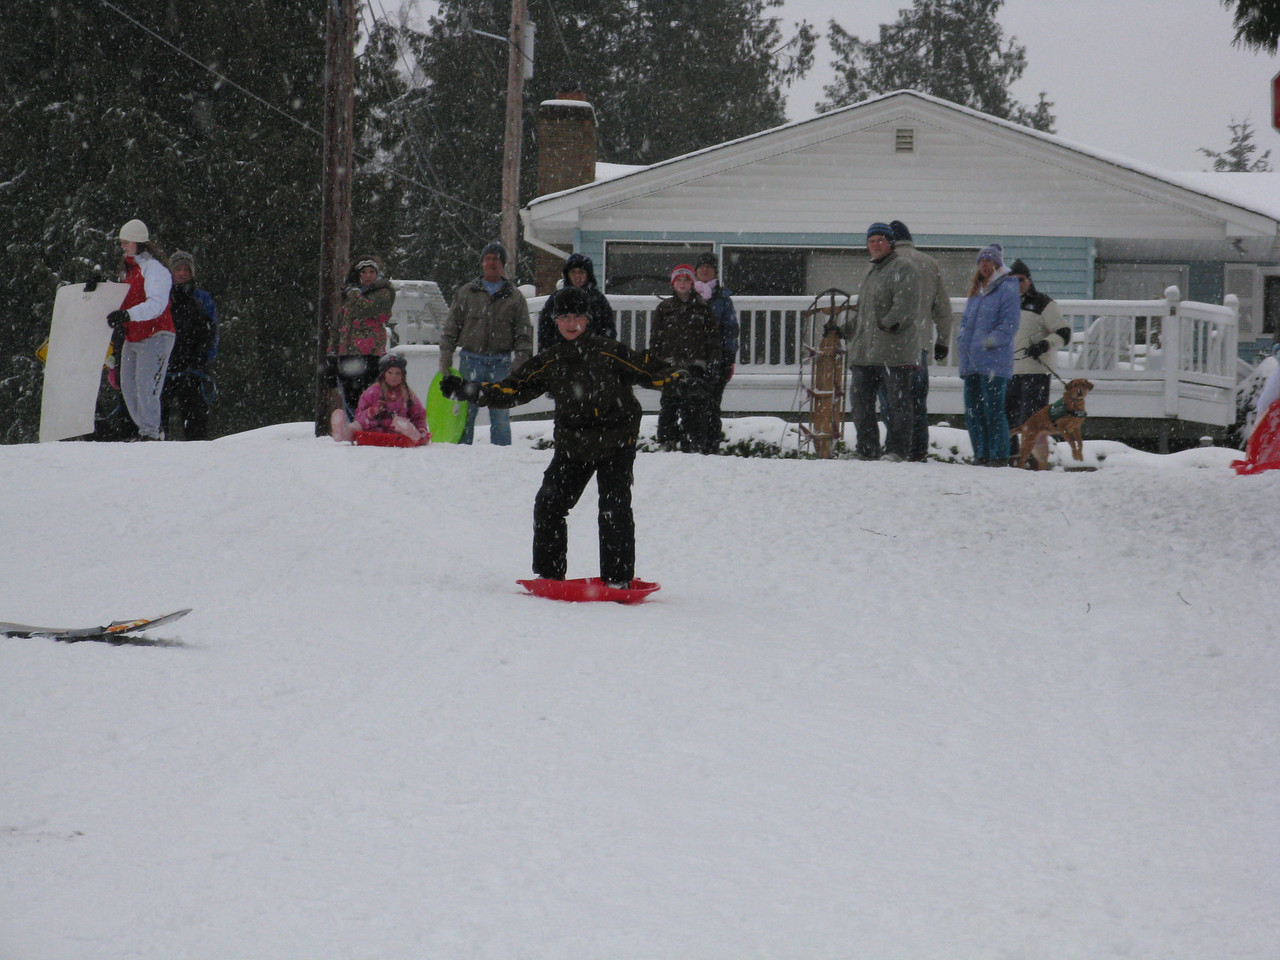 This young man is trying to use a disk as a snowboard.  He does not have much control.  It is hard to get an edge in the compact snow, because there are no edges on the disk.